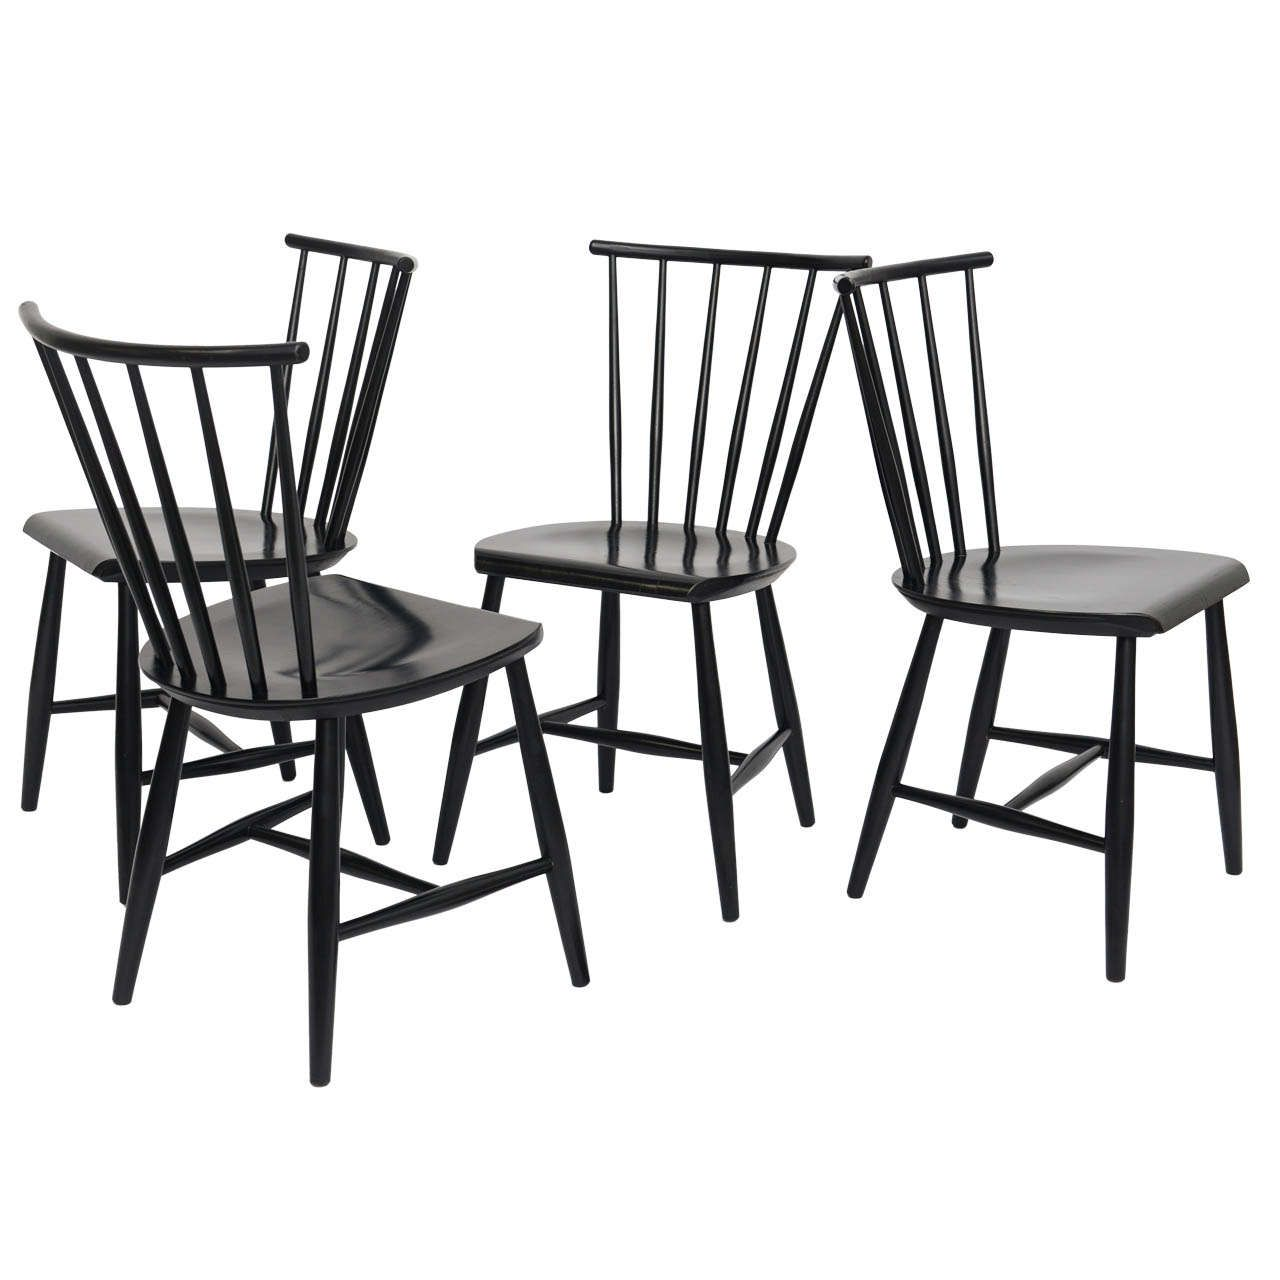 Four 1950s Swedish Windsor Style Spindle Back Dining Chairs | Windsor